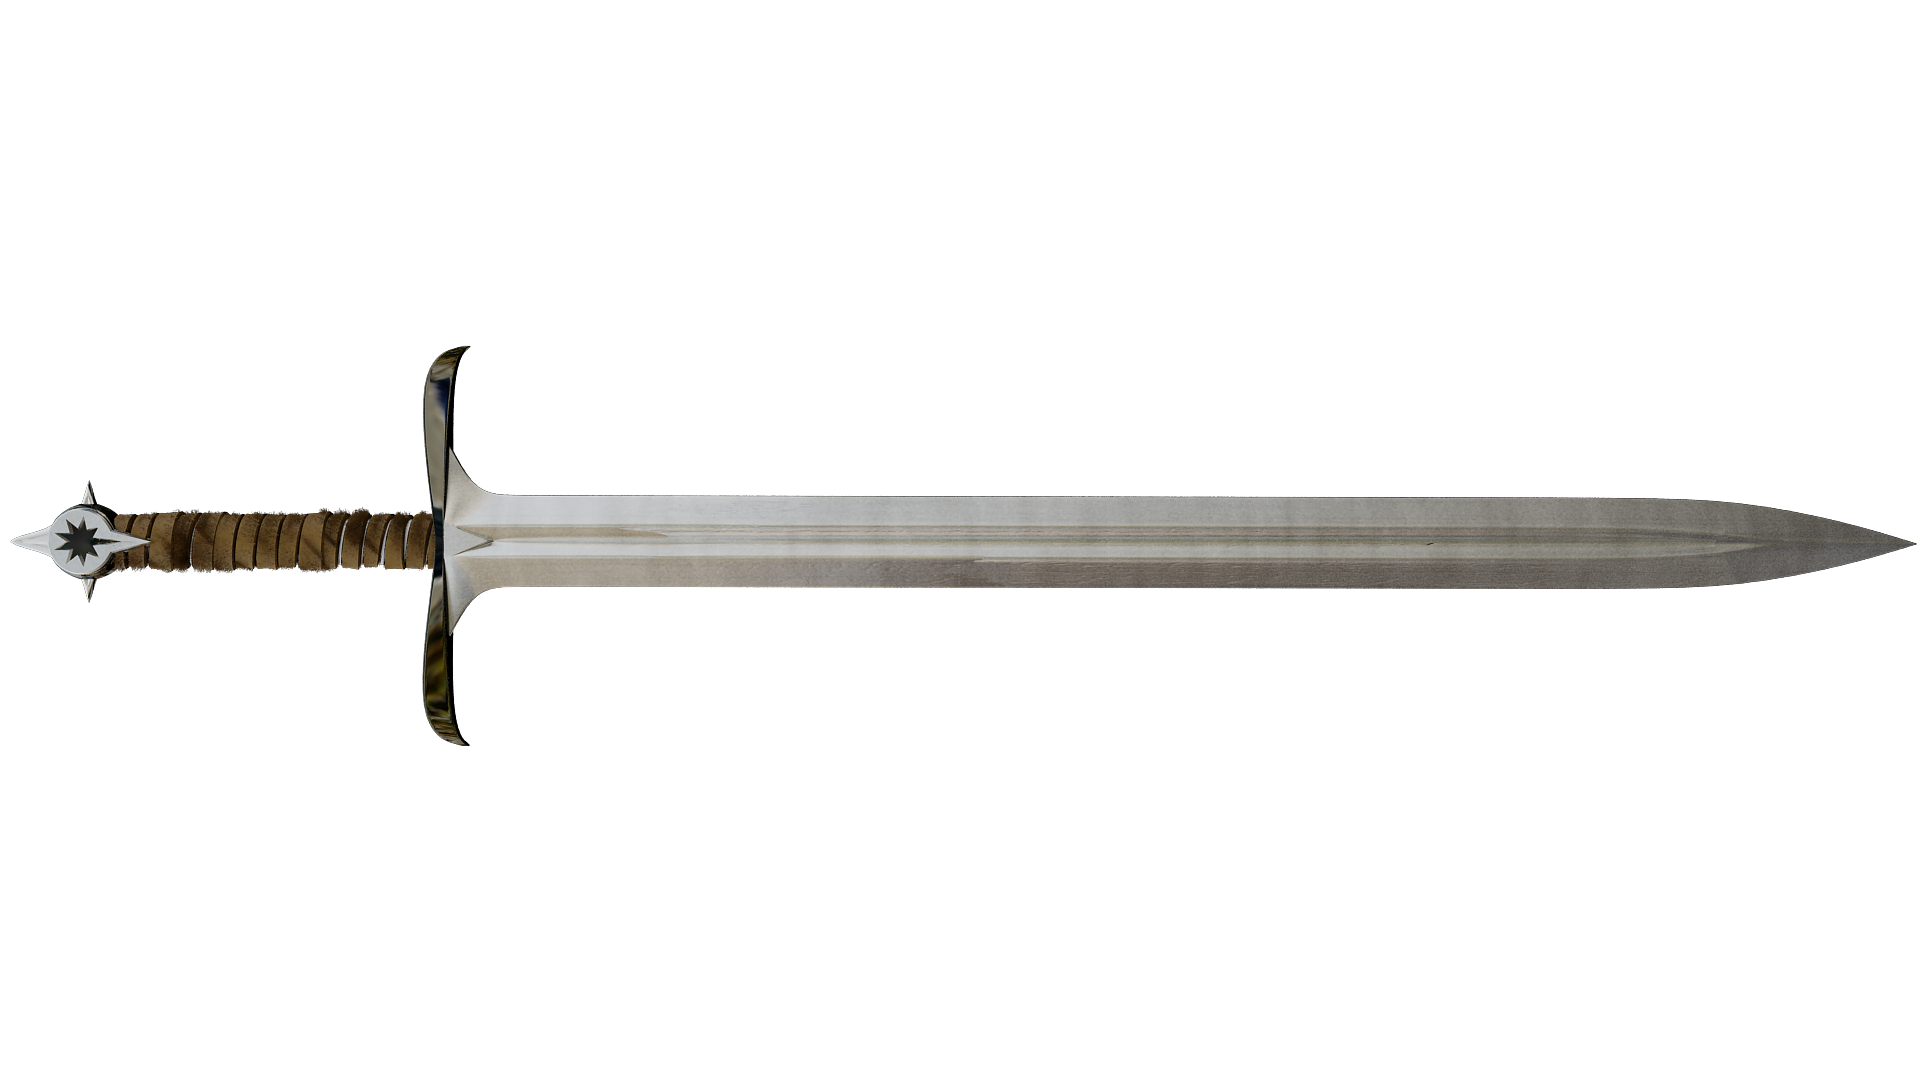 Choix d'une faction - Page 6 Sword-hd-png-sword-png-image-1920